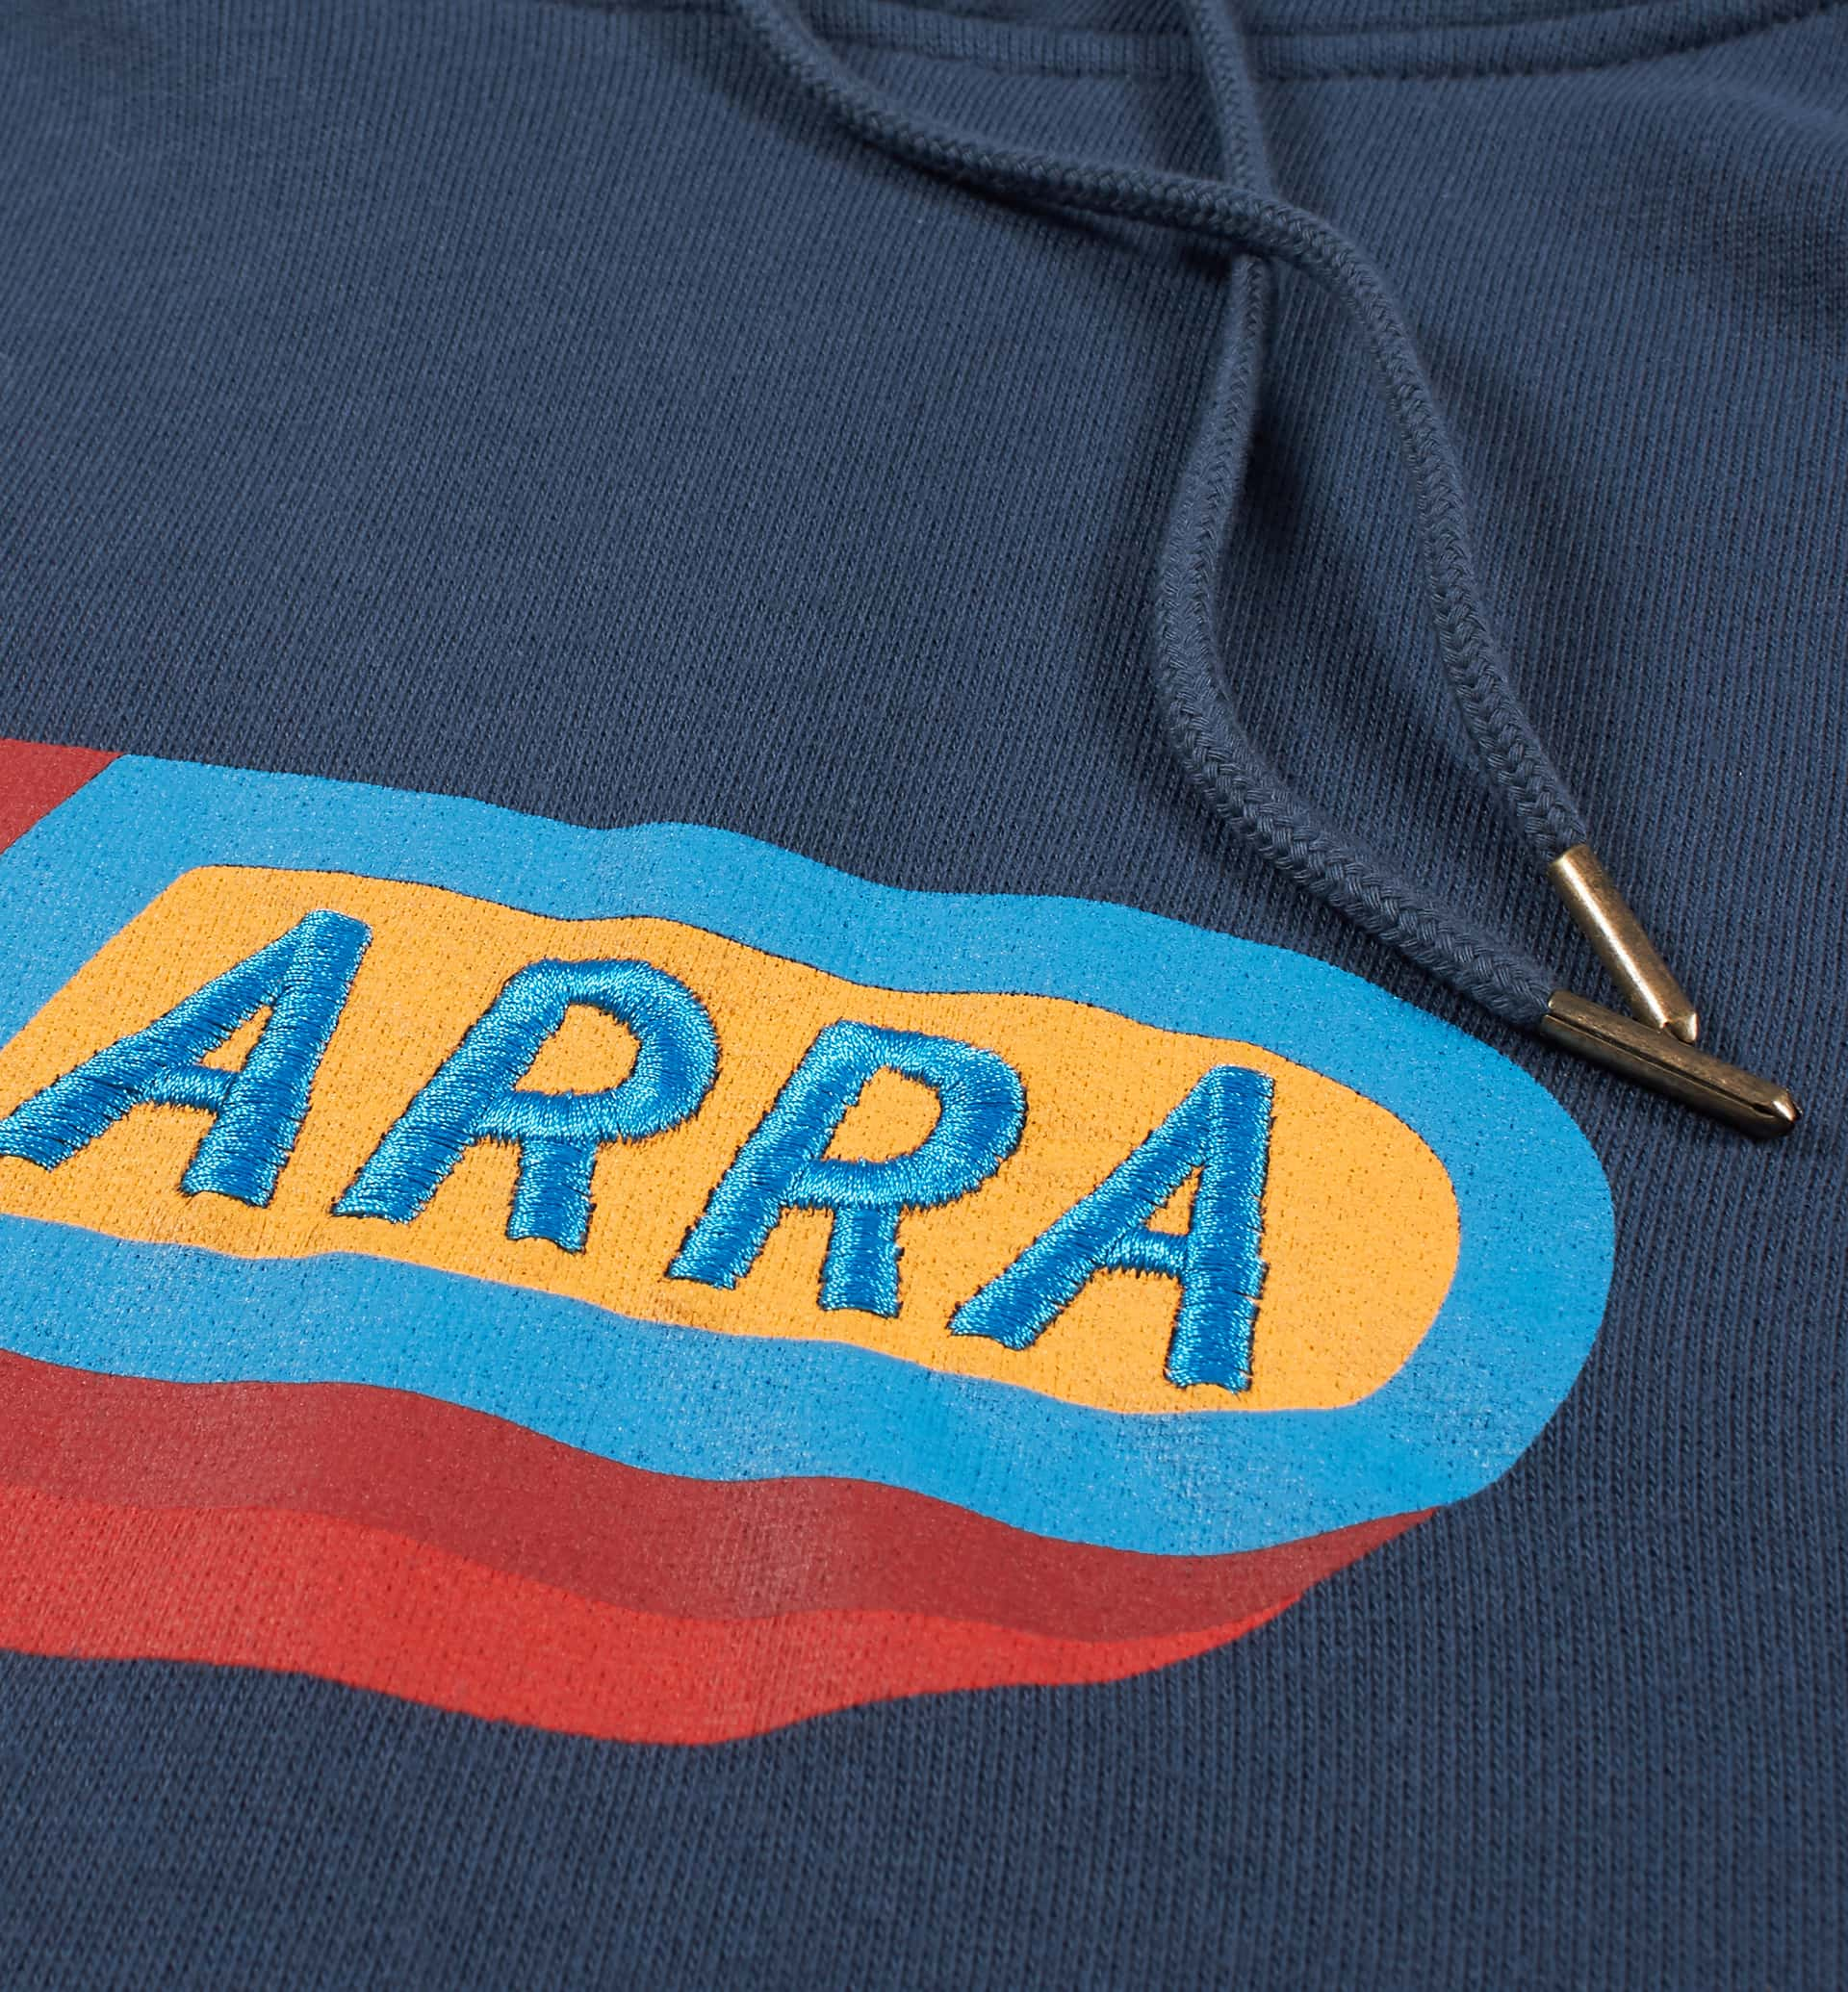 Parra - garage oil hooded sweatshirt